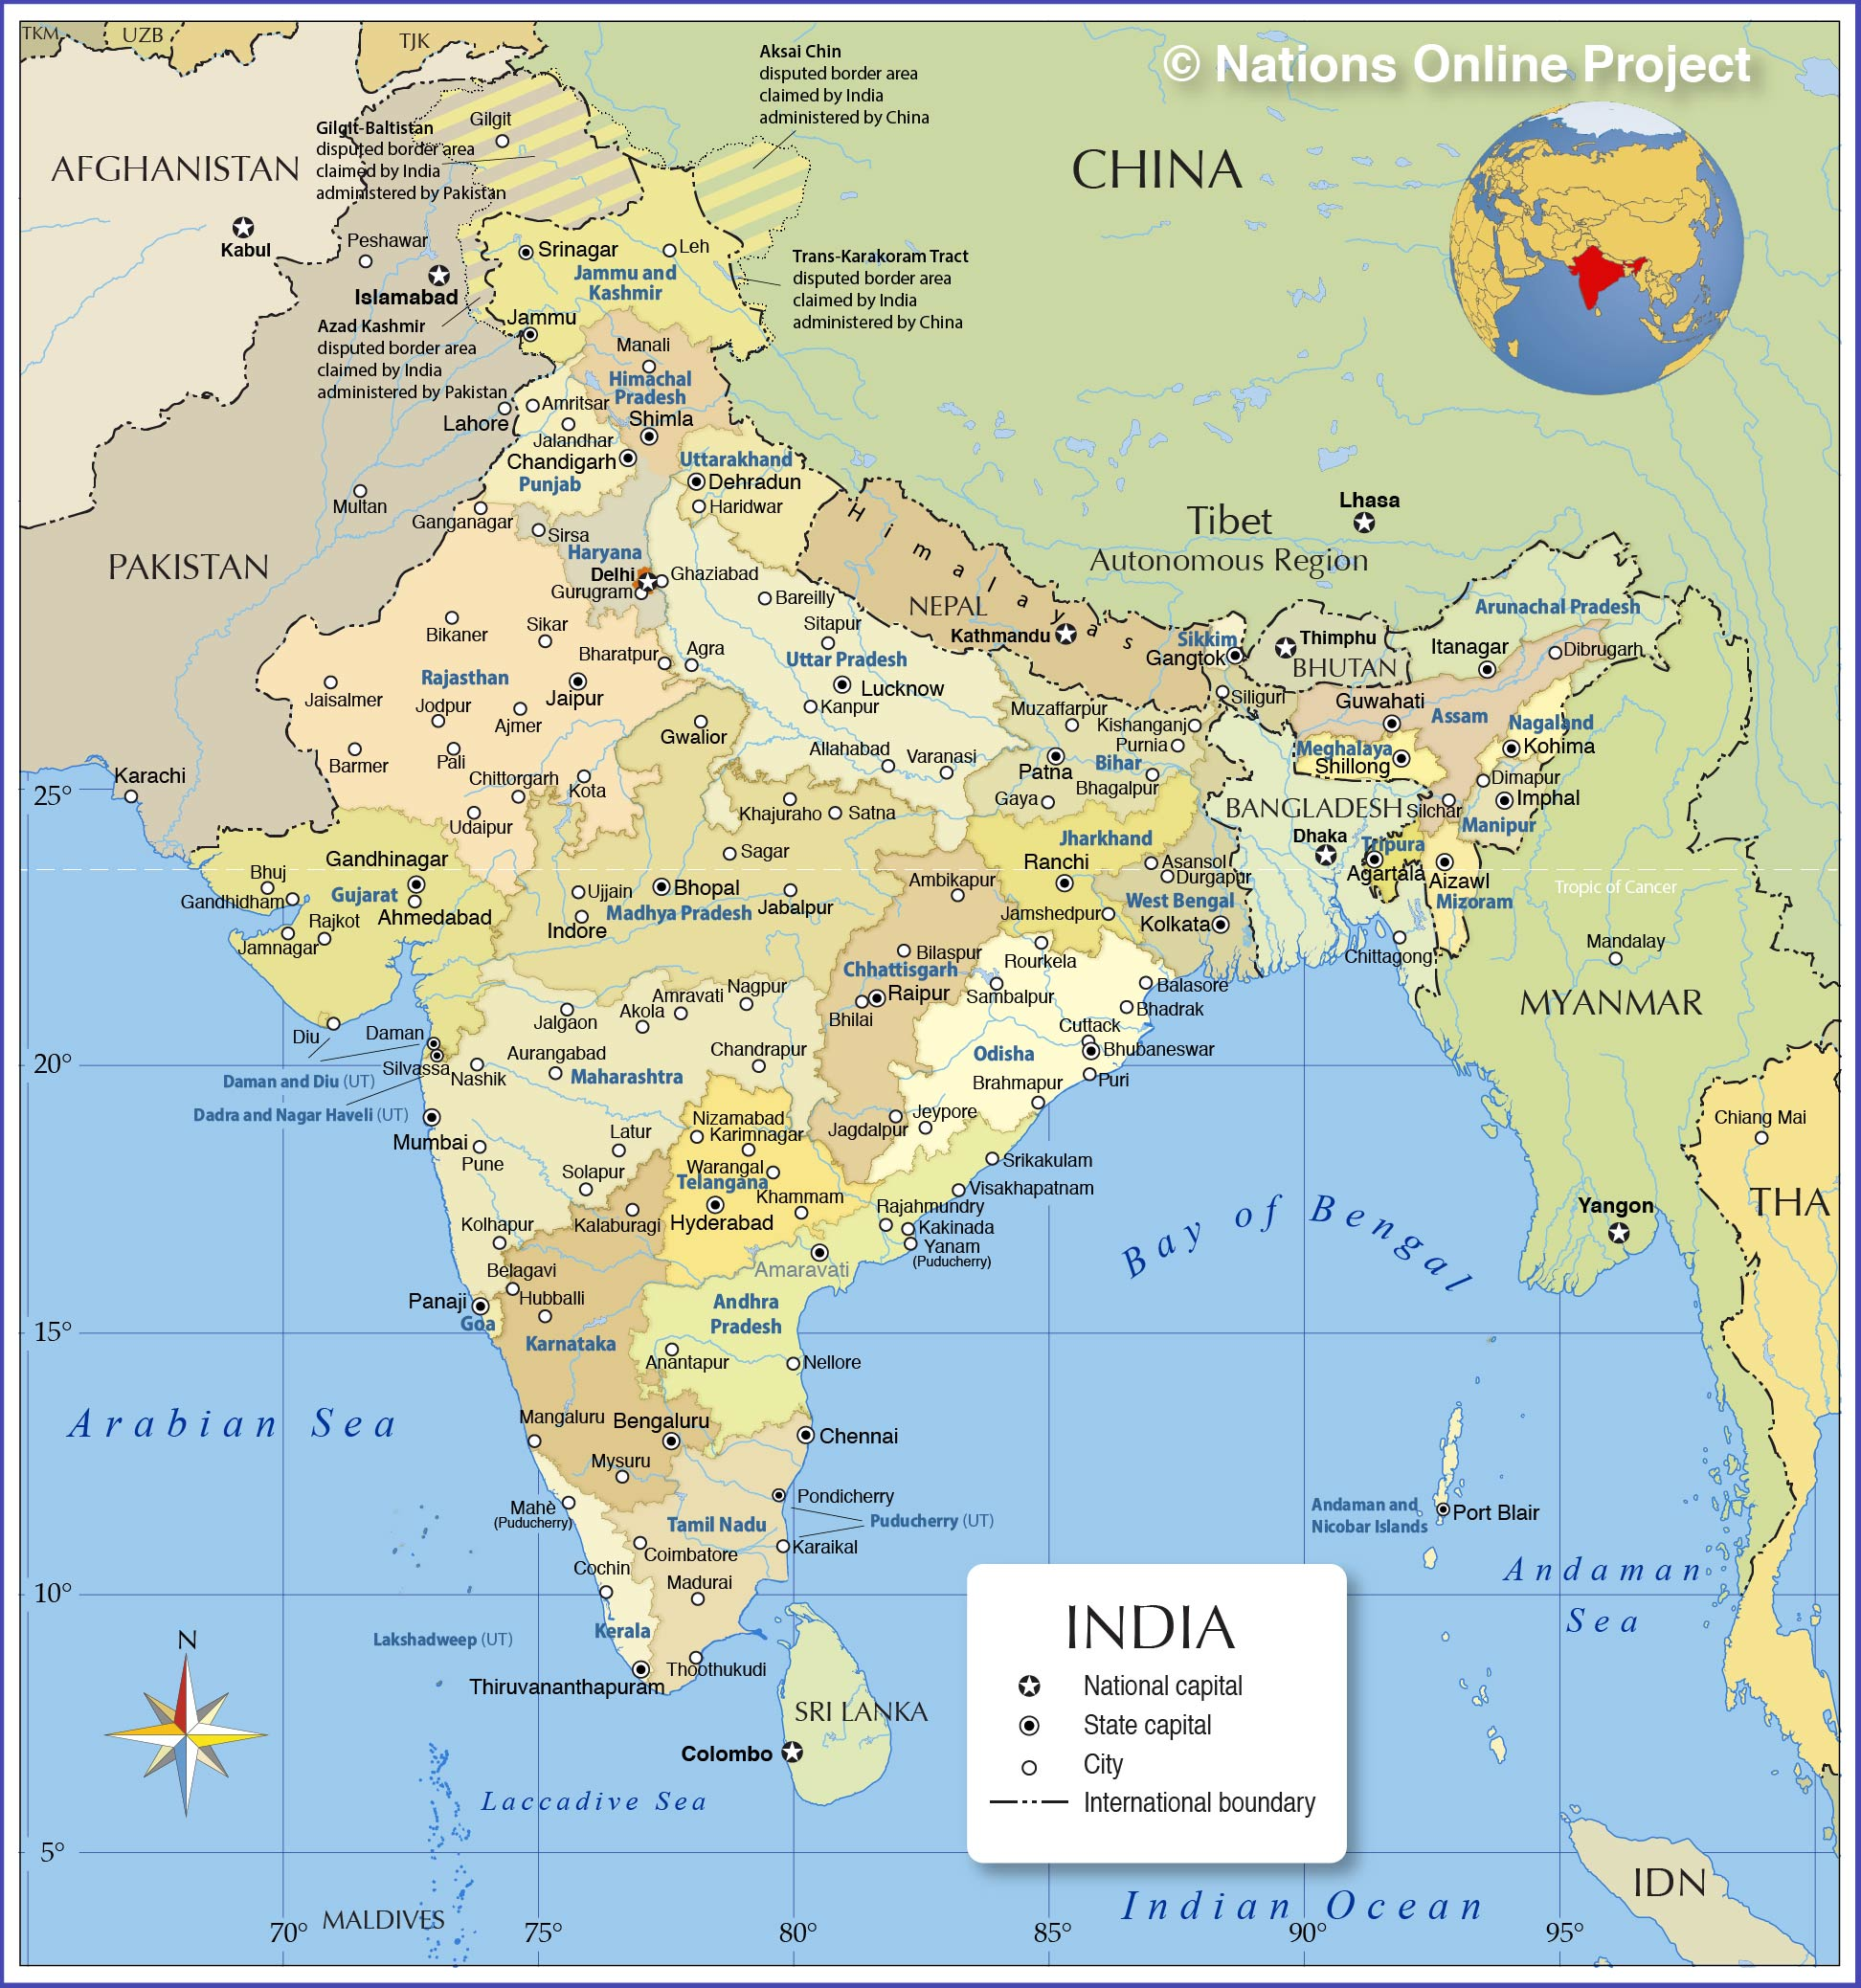 state maps of india Political Map Of India S States Nations Online Project state maps of india